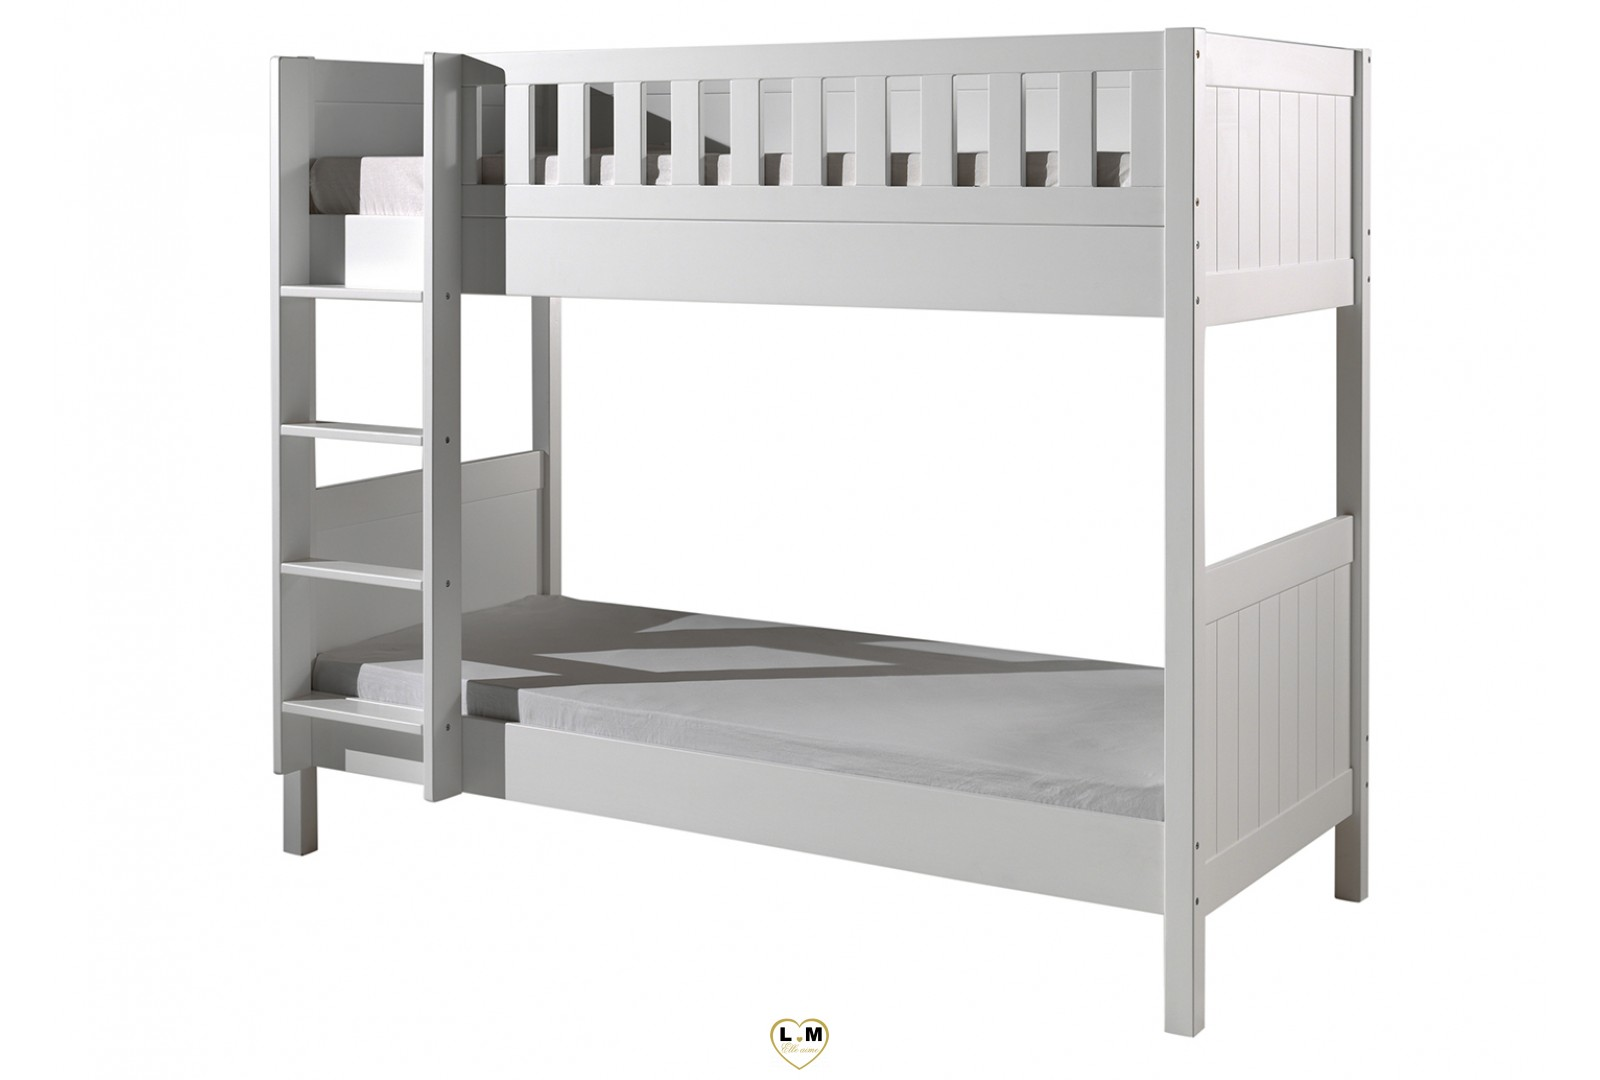 nautique chambre enfant le lit superpose lignemeuble com. Black Bedroom Furniture Sets. Home Design Ideas